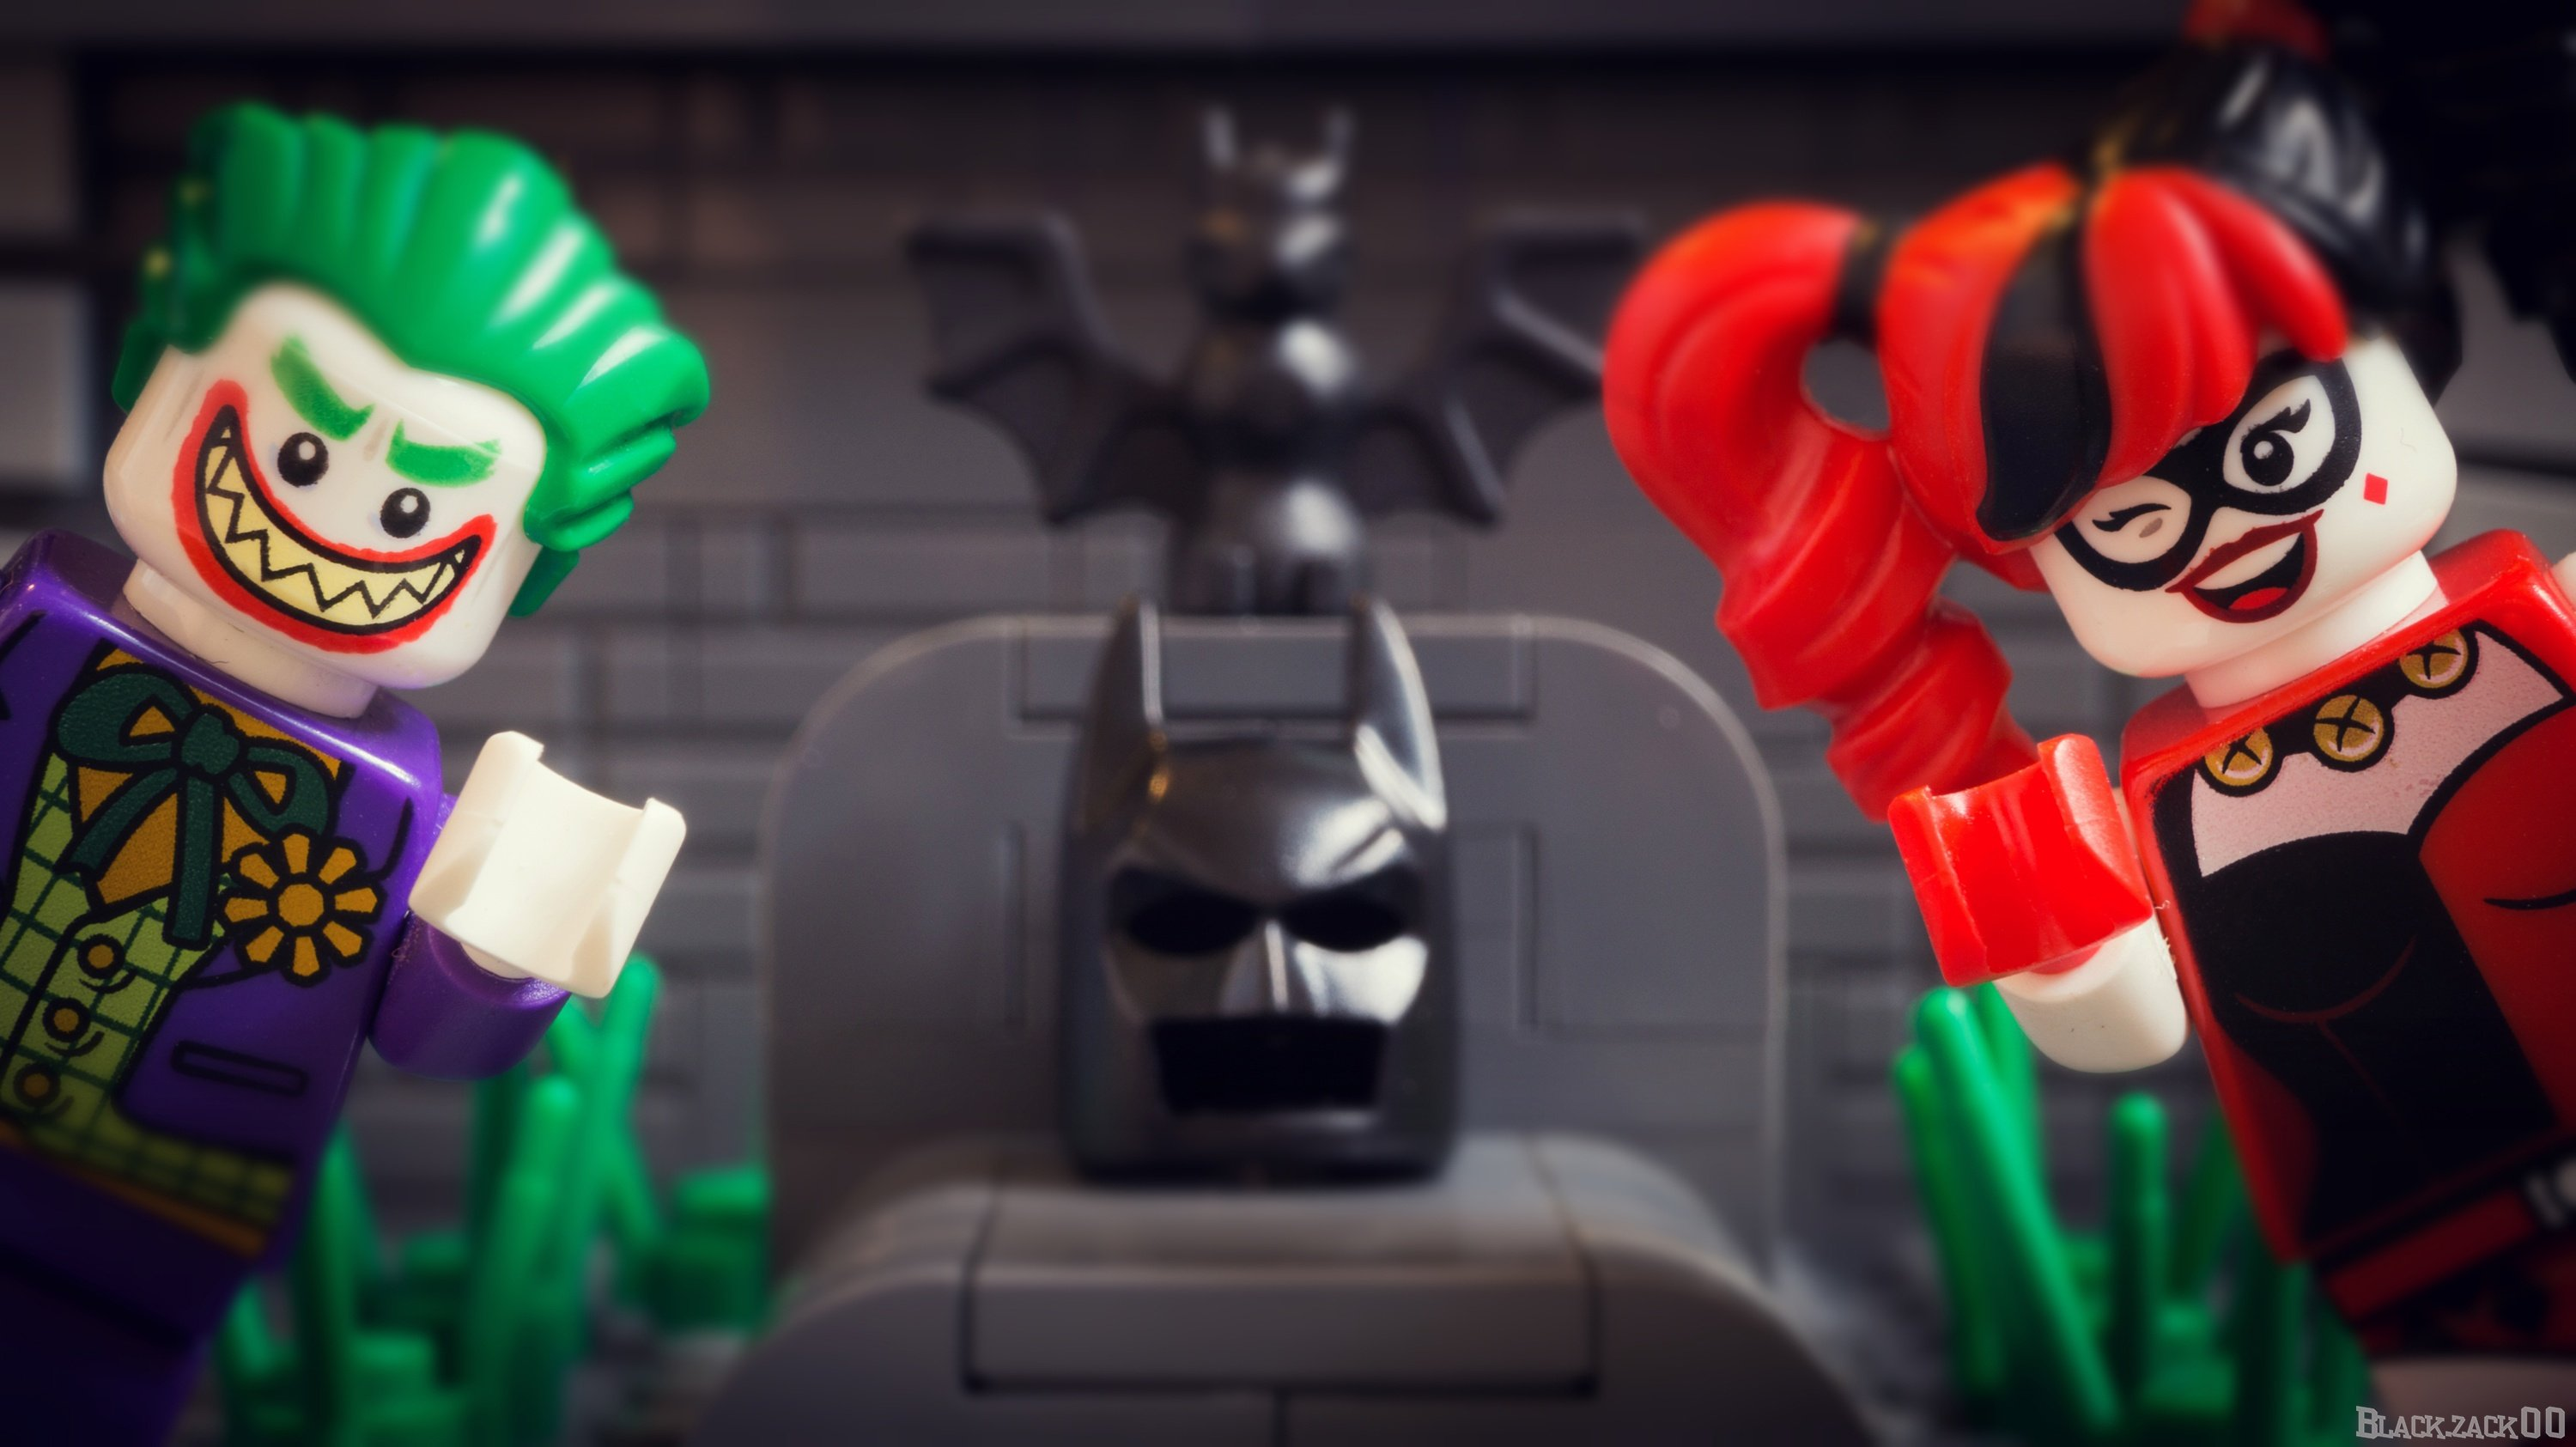 Should these two super villains train differently?